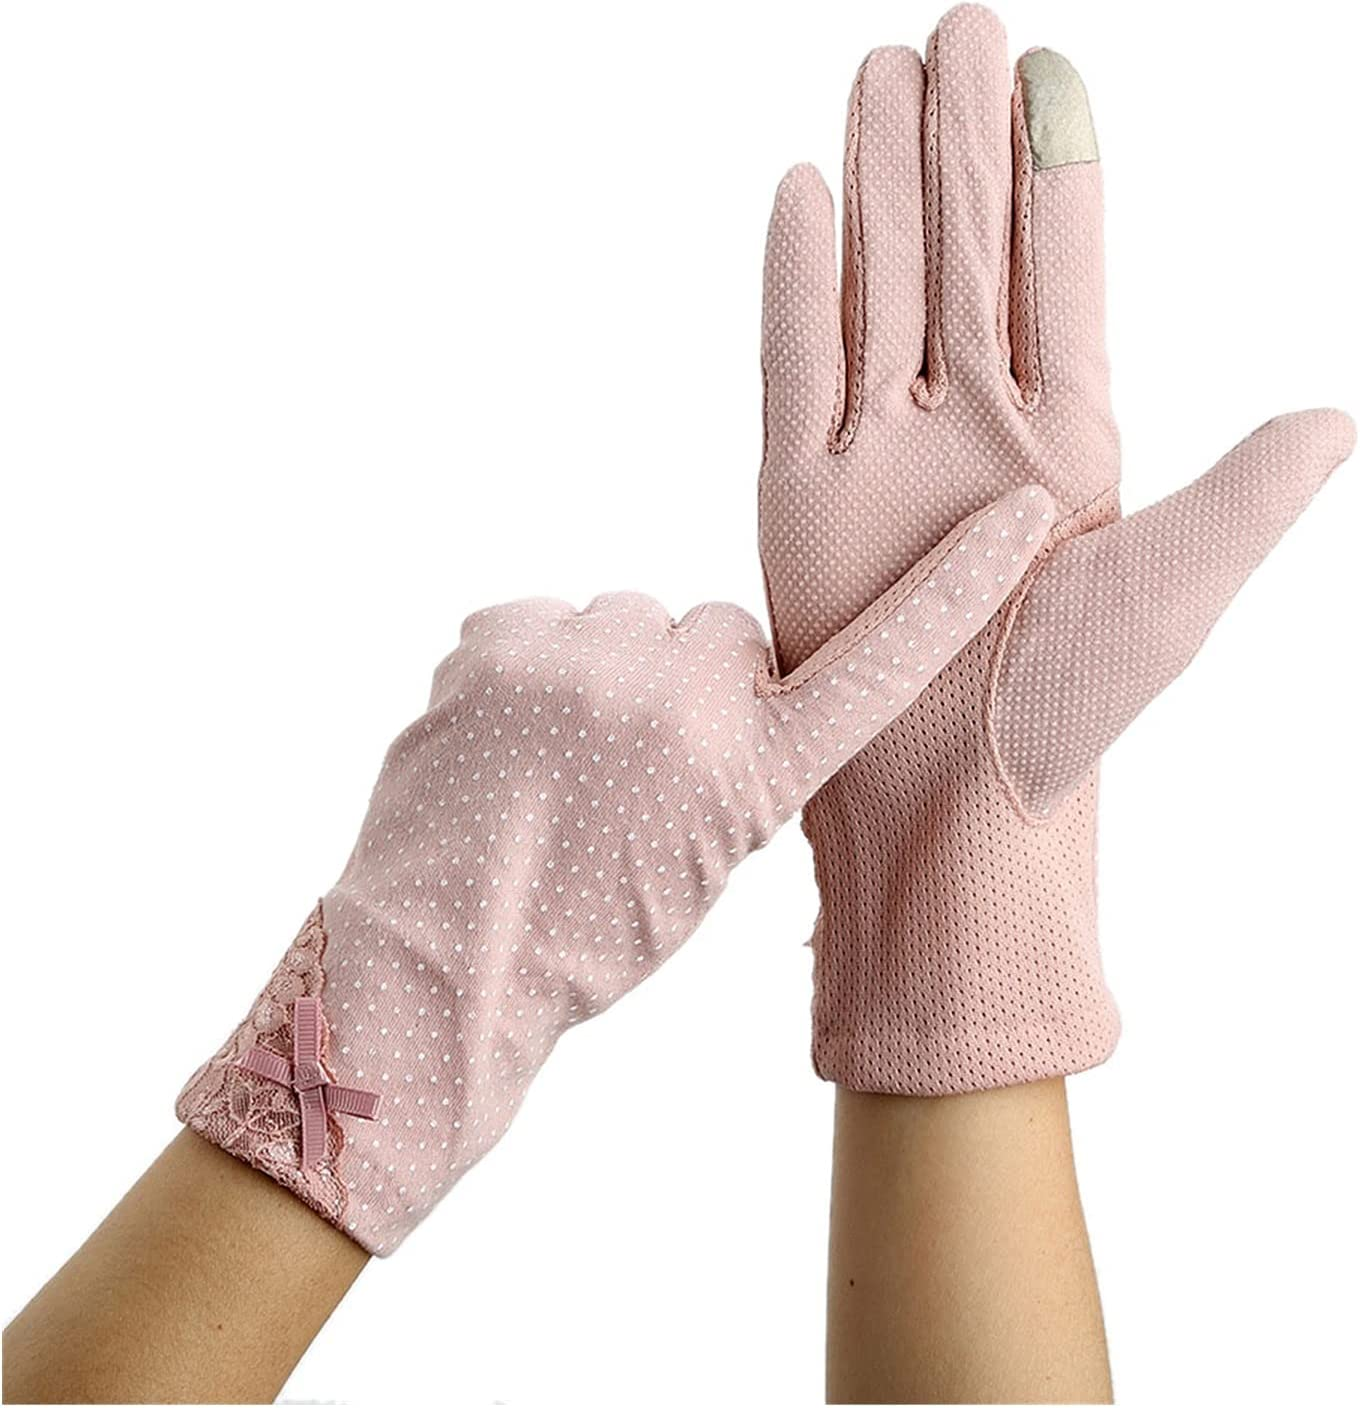 Lace Gloves Summer Lace Sunscreen Gloves Driving Non-slip Thin Women Touch Screen Windproof Mittens Glove Dot Lady Girl Wrist Practical (Color : Dark pink, Gloves Size : One Size)